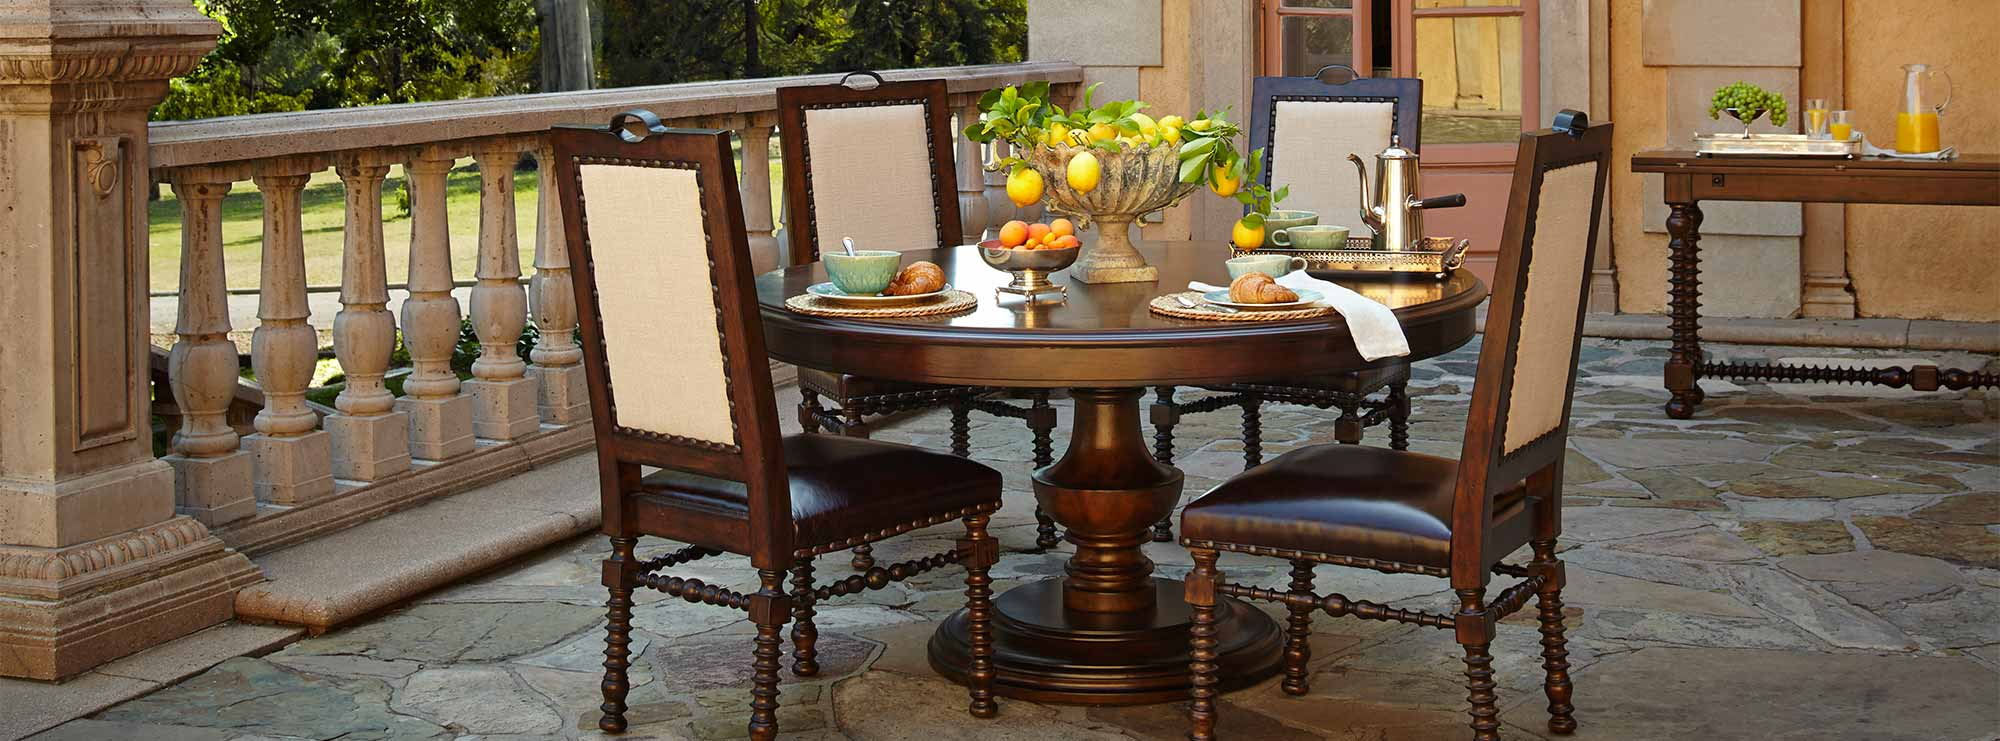 The Bella Cera round dining table and chairs